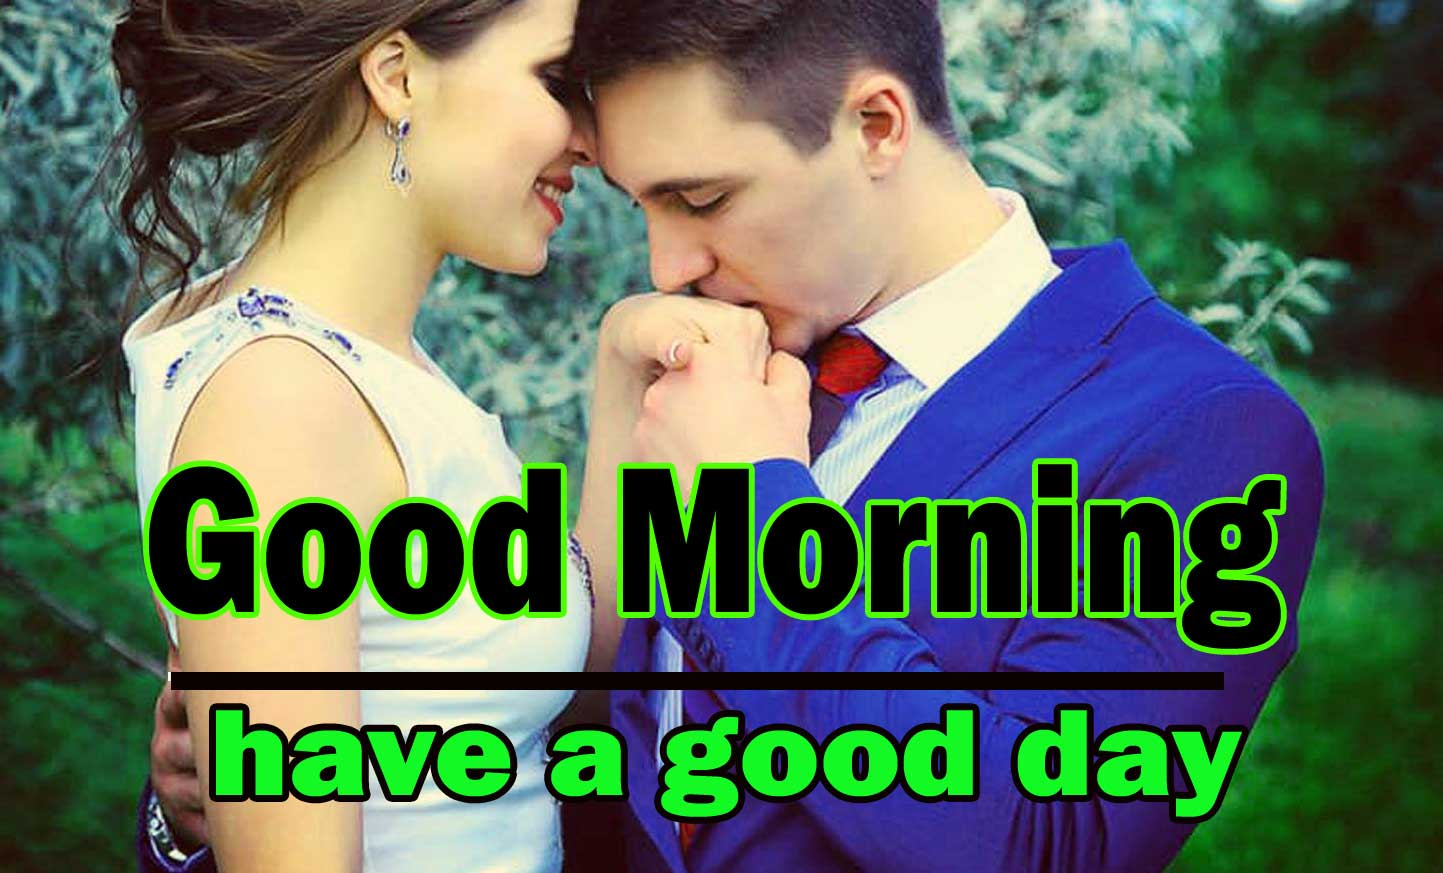 Romantic Love Couple Good Morning 1